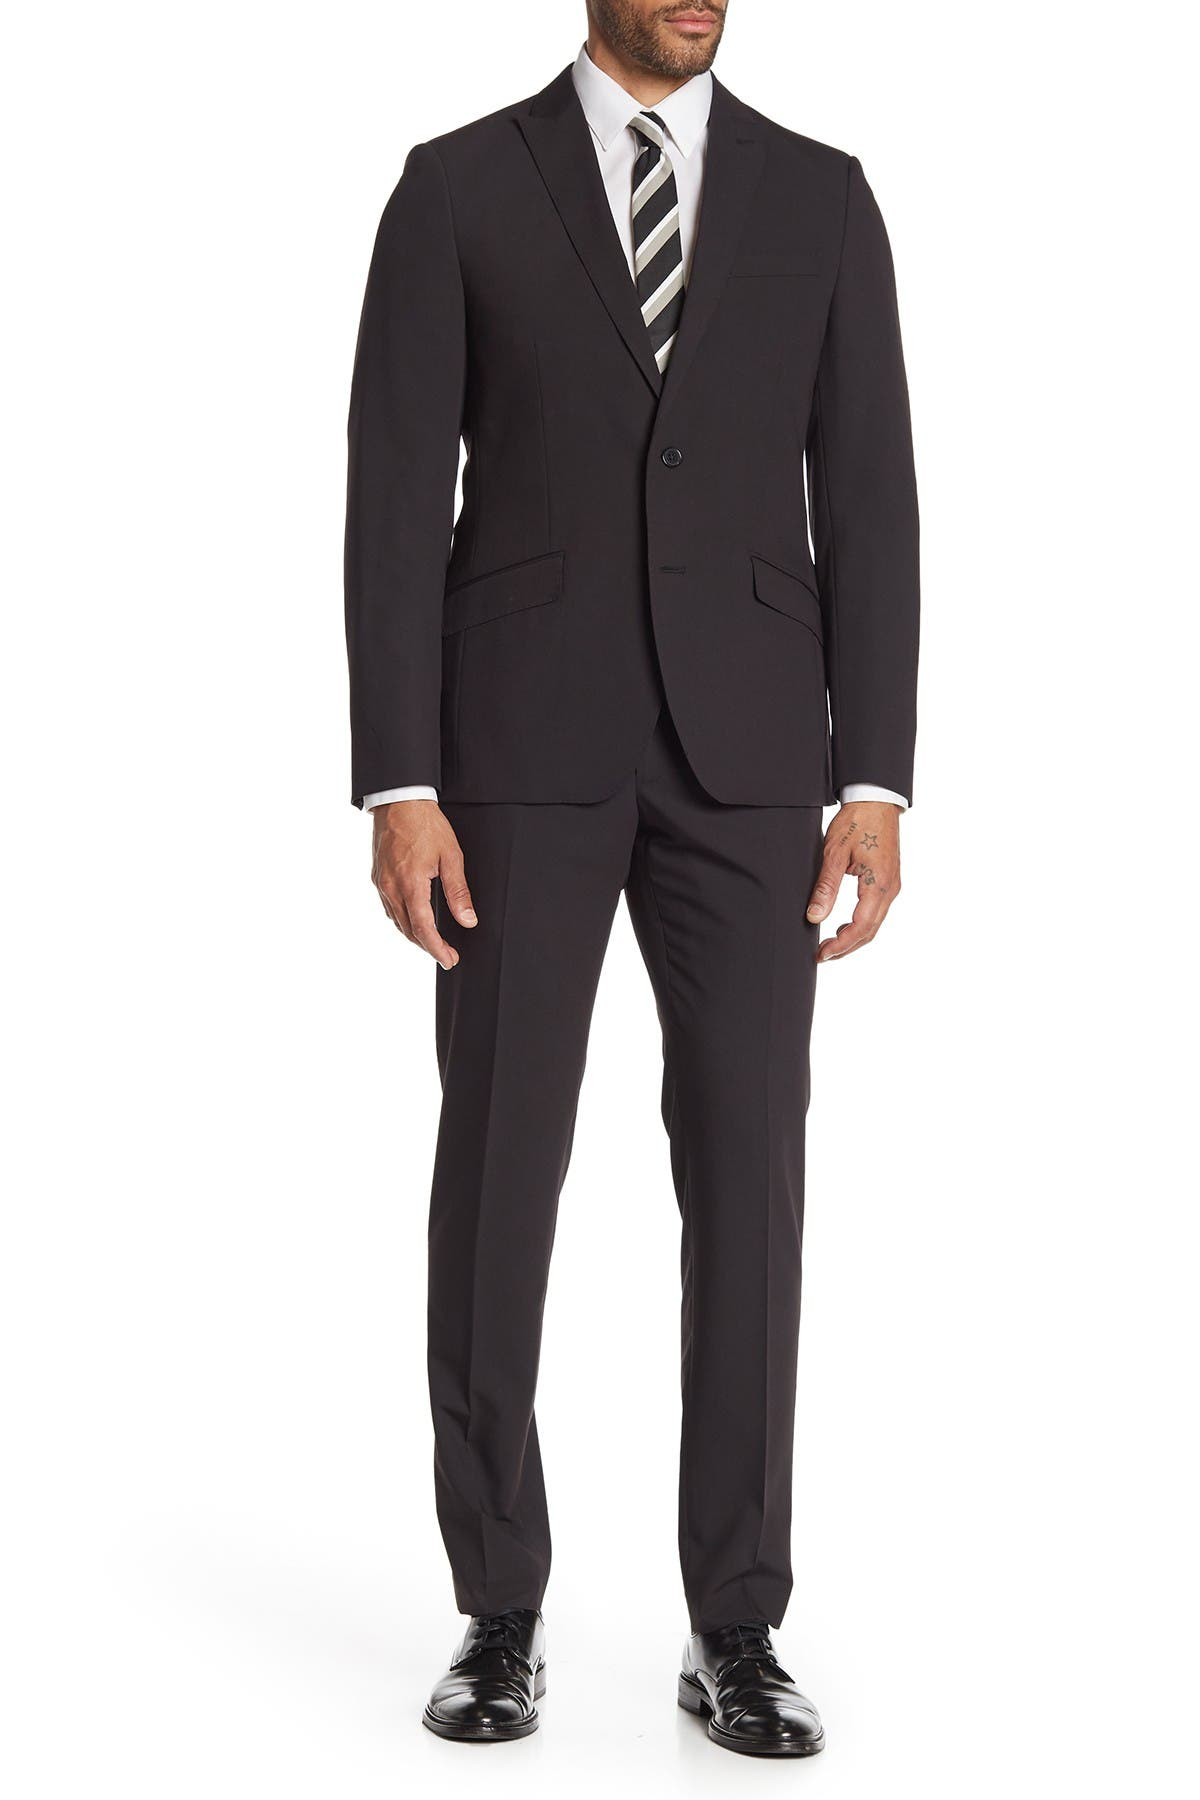 Image of SAVILE ROW CO Brixton Black Solid Two Button Peak Lapel Skinny Fit Suit